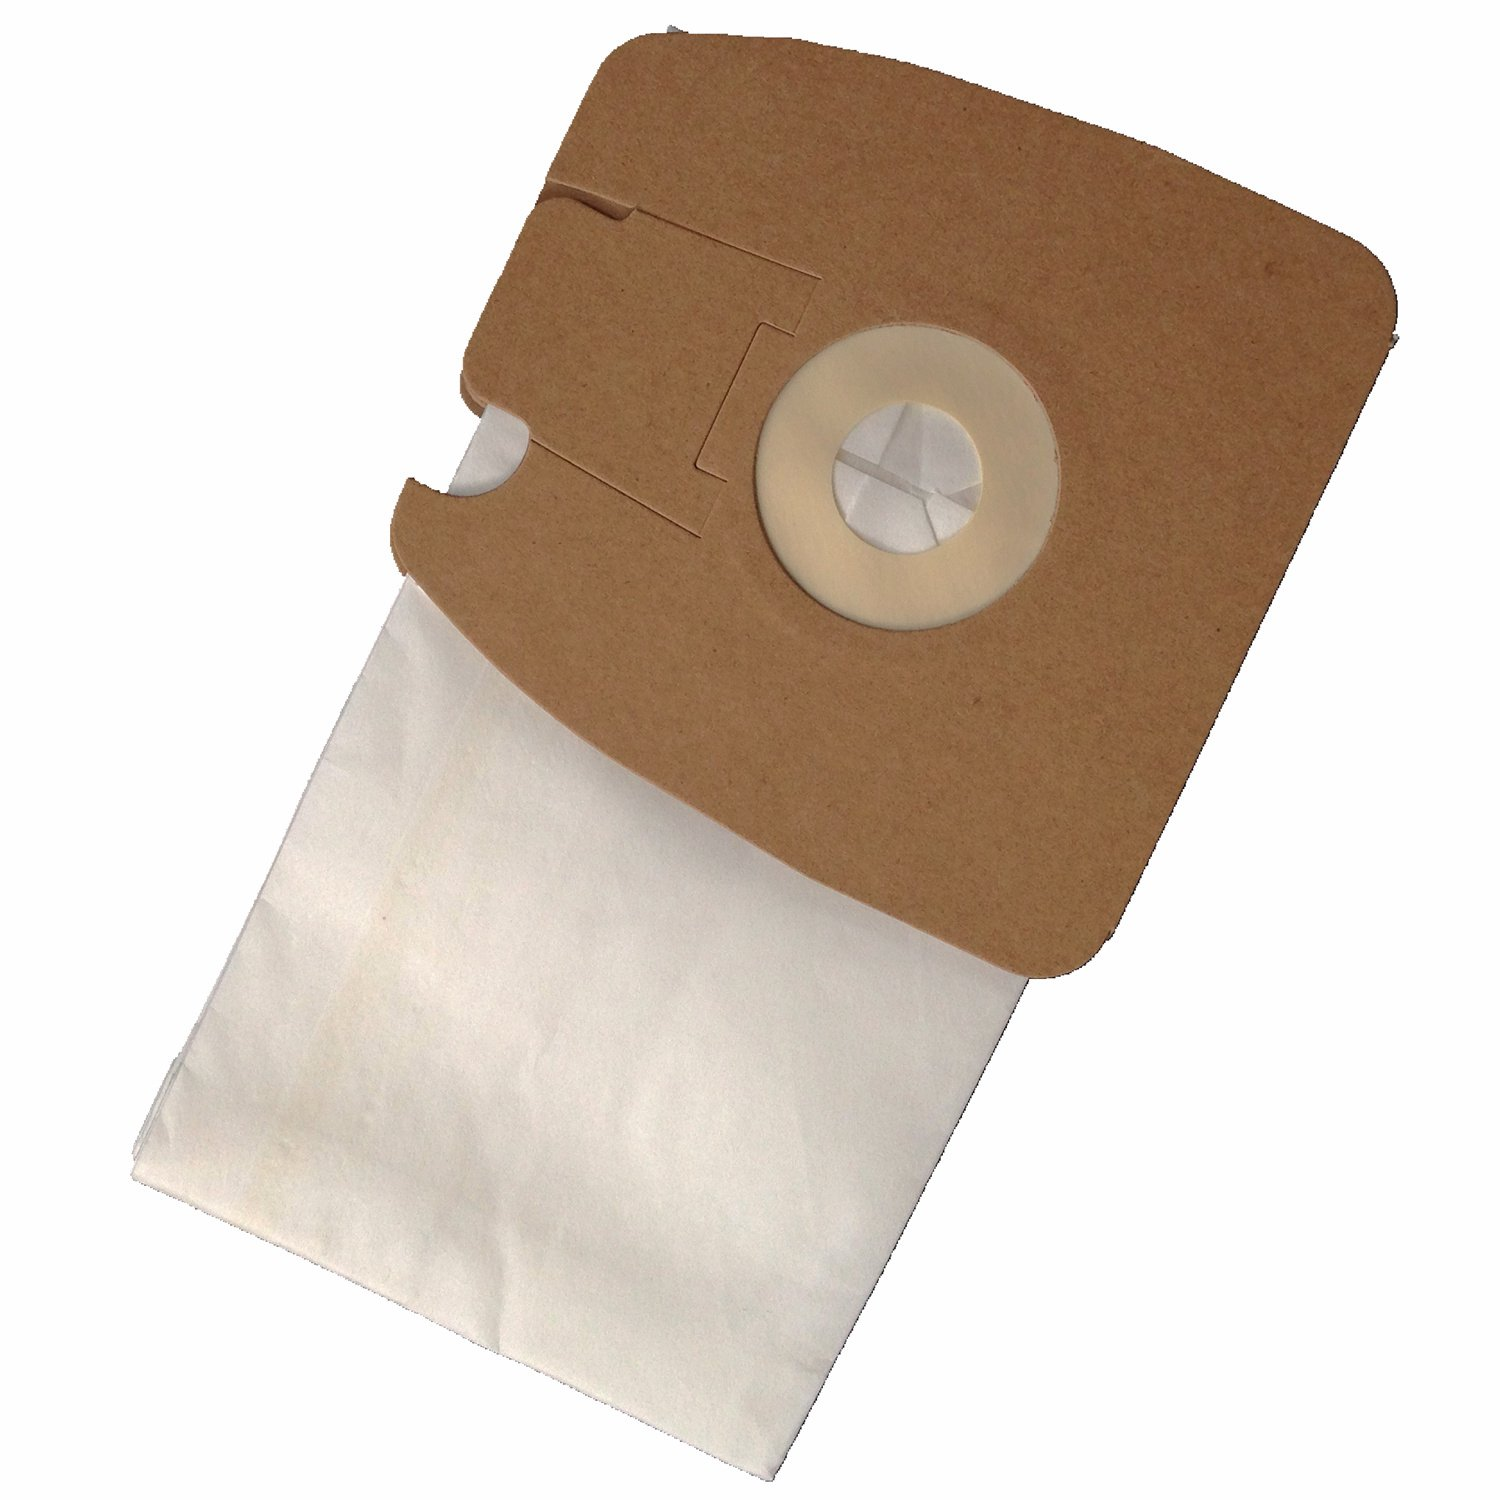 CF Clean Fairy 15Pack Micro Filtration Vacuum Bags Replacement for Eureka MM Mighty Mite 3670 and 3680 Canister